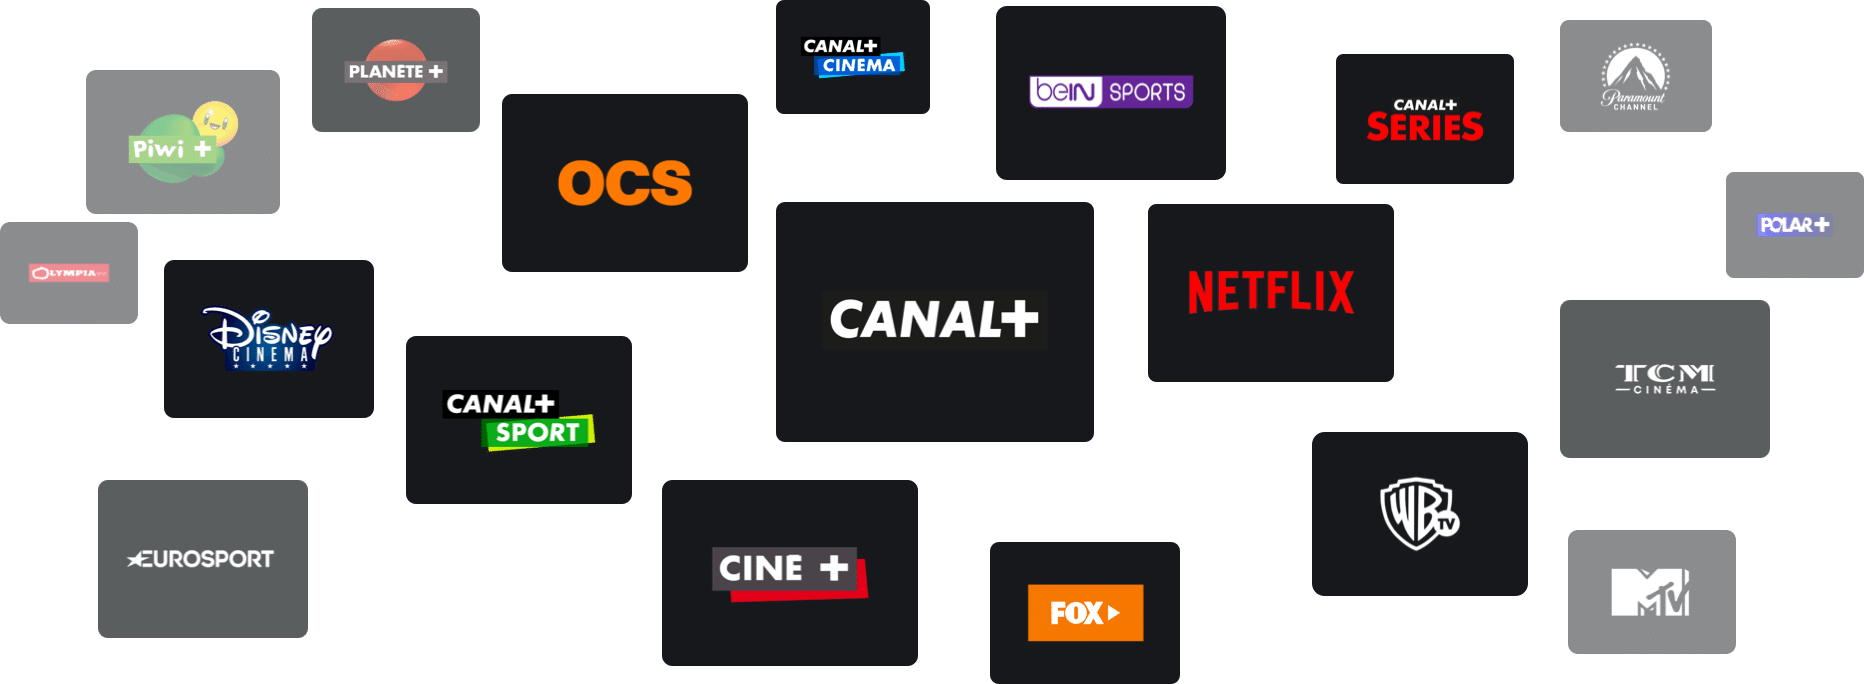 https://thumb.canalplus.pro/bran/unsafe/%7BresolutionXY%7D/image/5e5fcd33acbaf/uploads/media/MULTI-CHANNELS.png